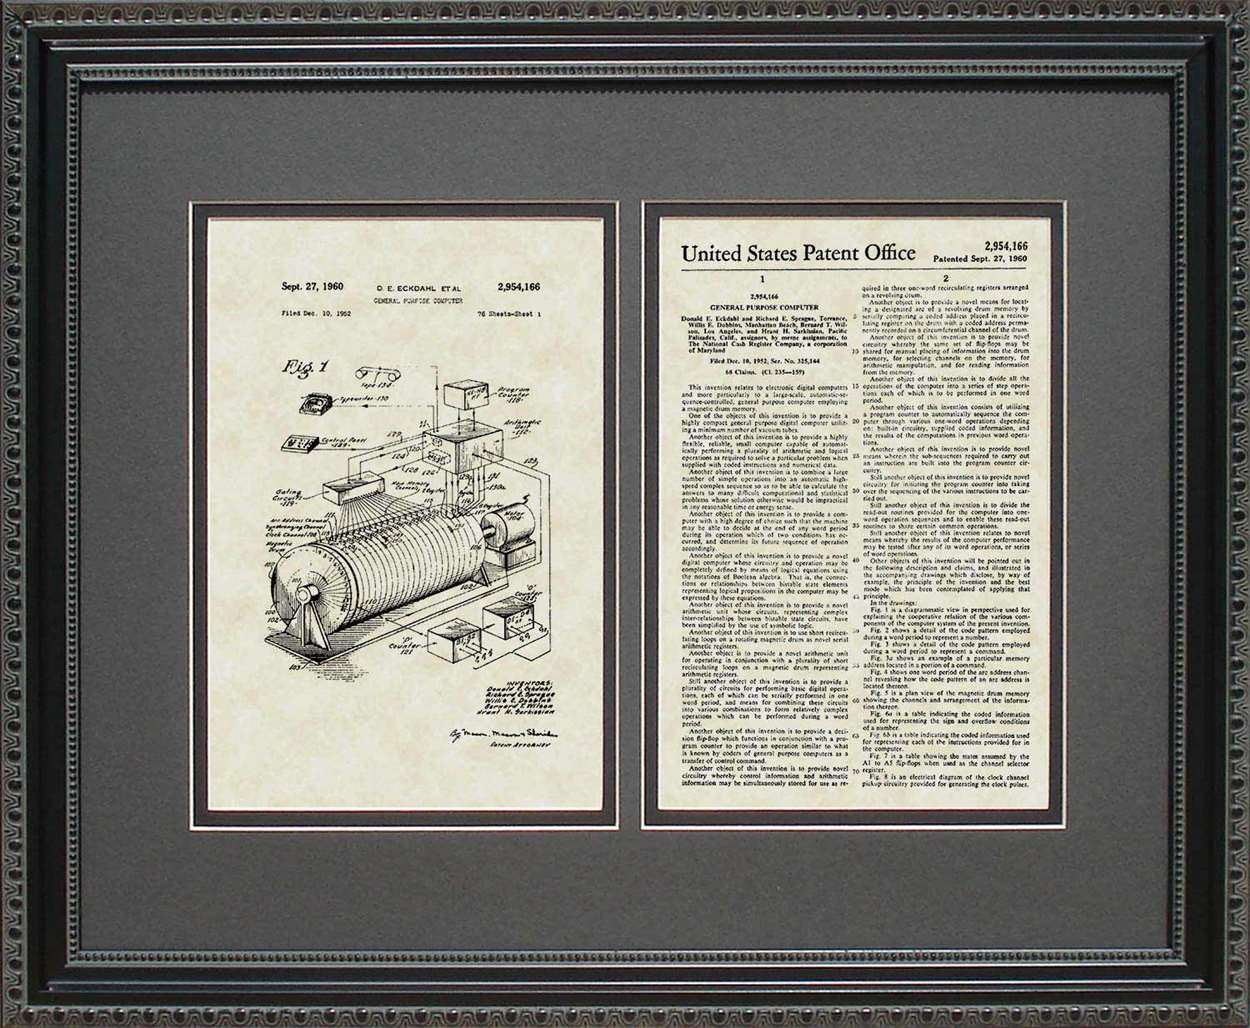 Early Computer Patent, Art & Copy, Eckdahl, 1960, 16x20